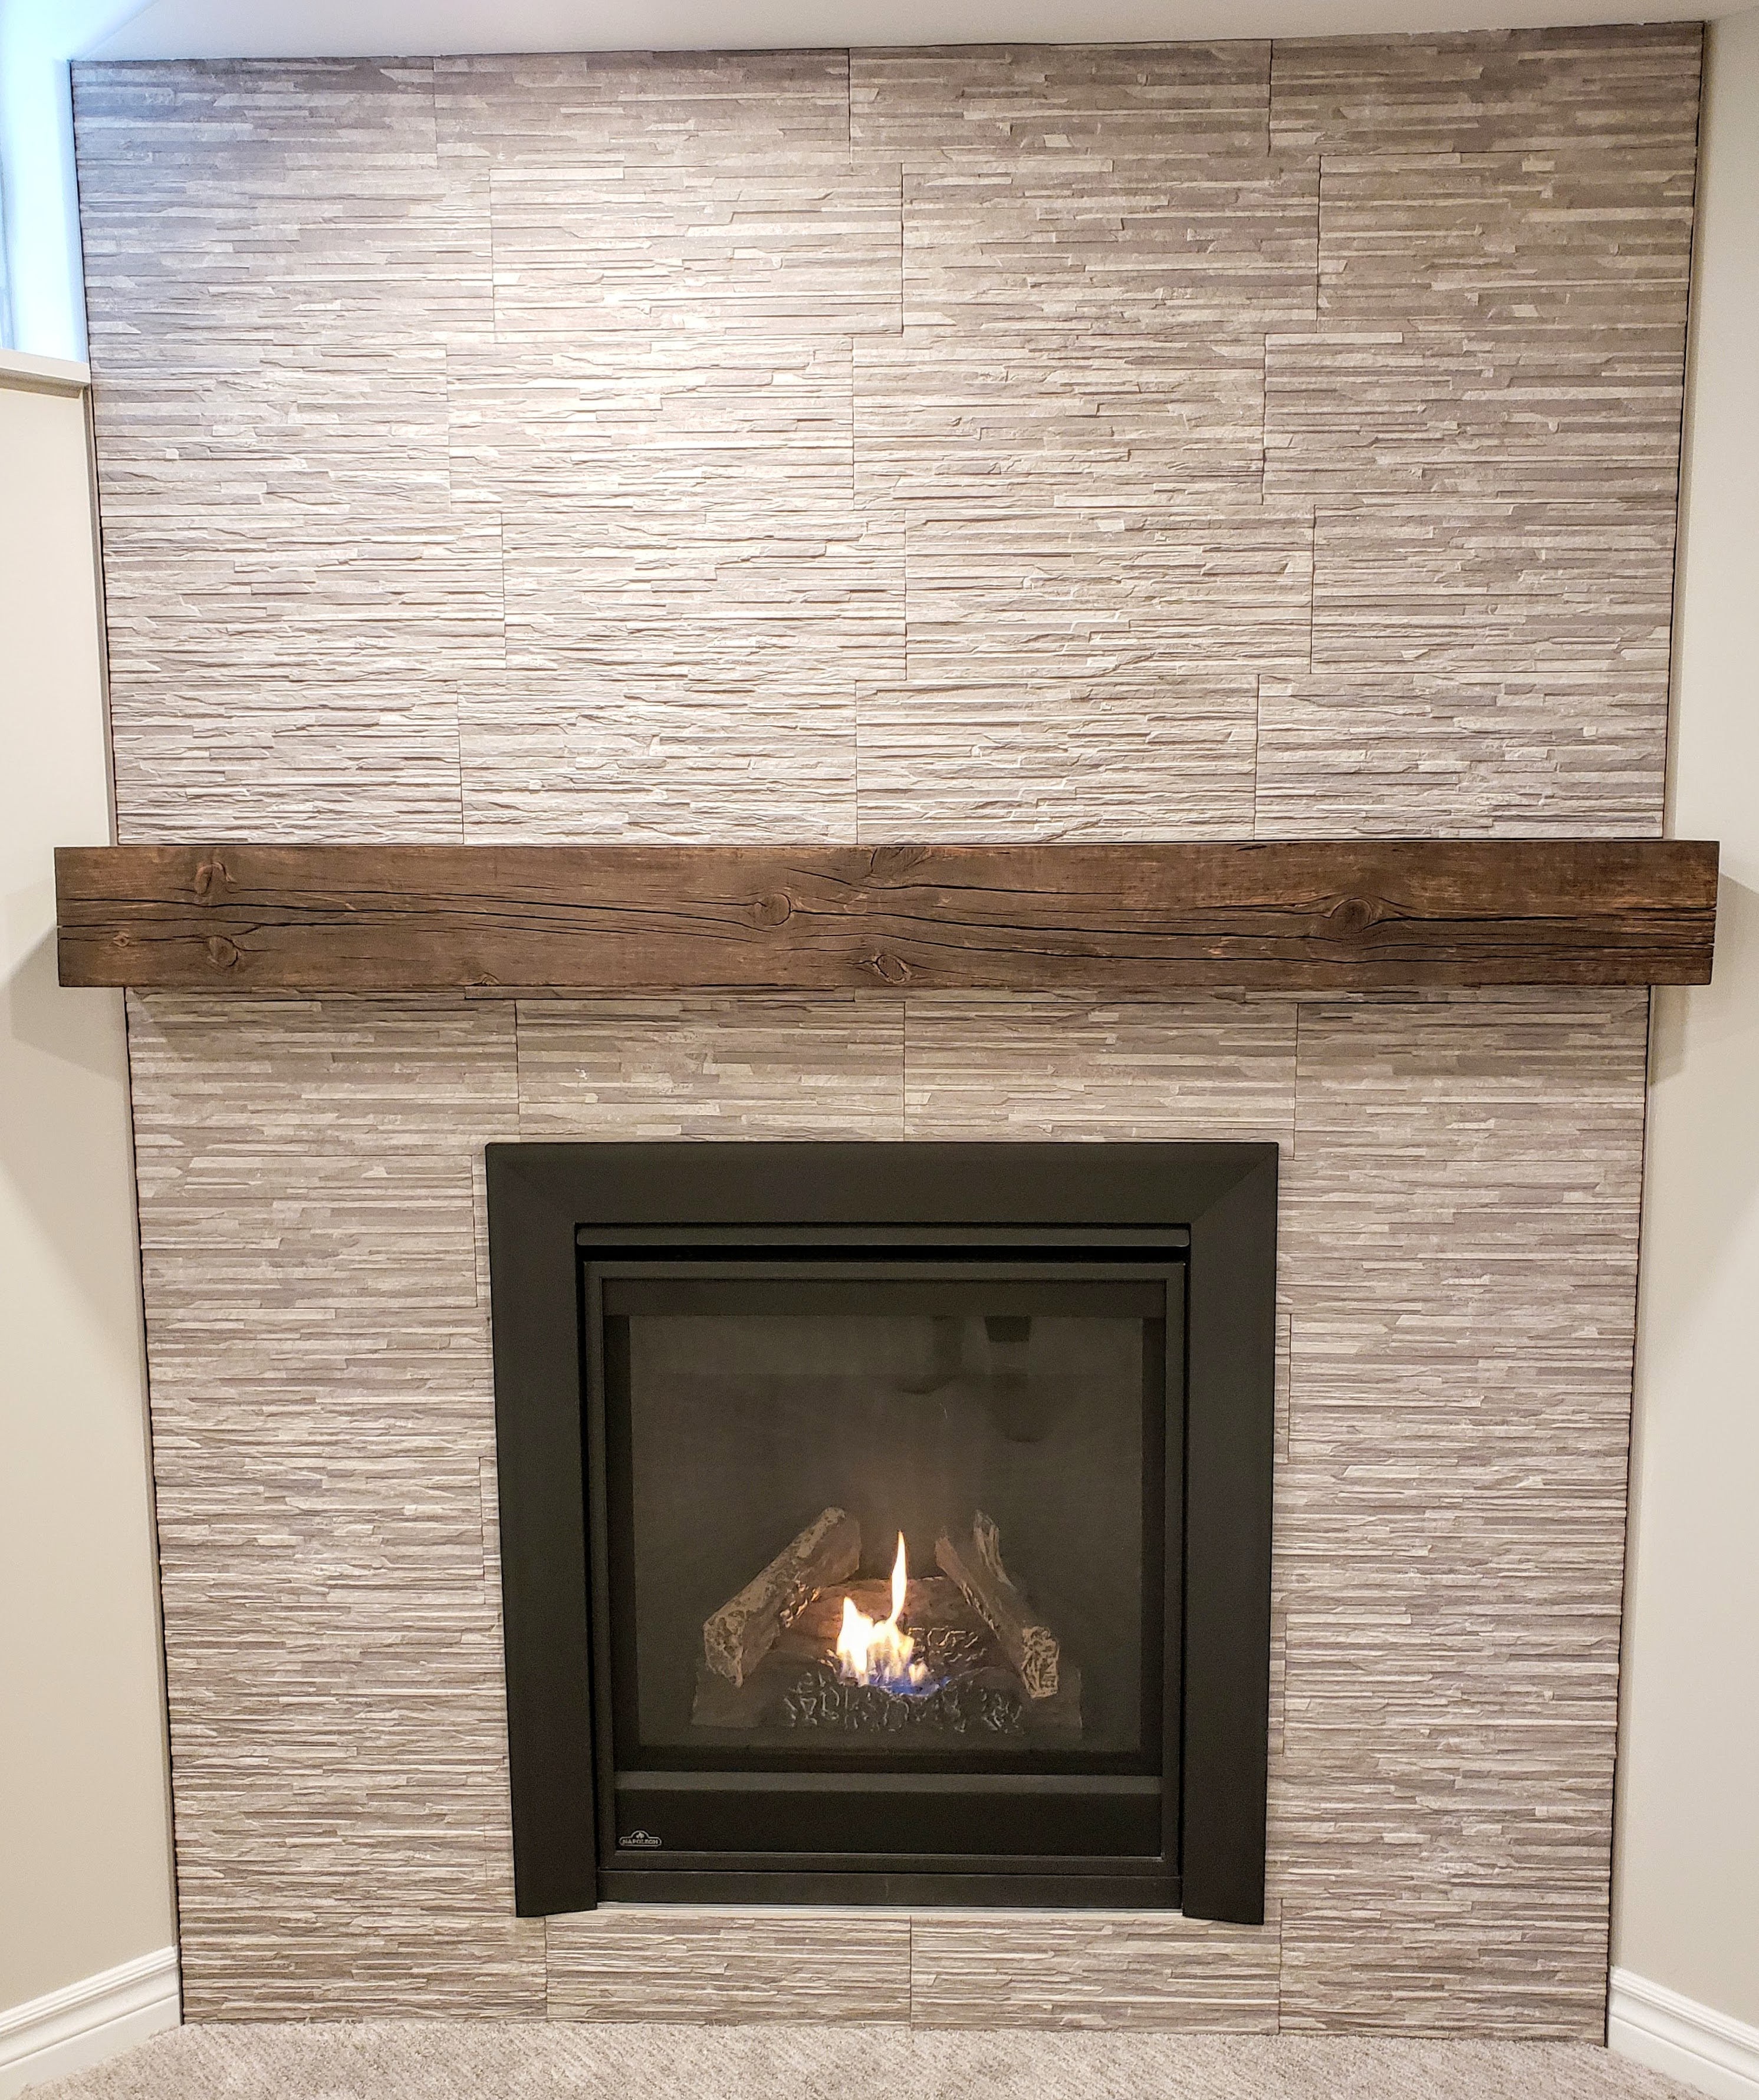 Fireplace tile surround and barn beam mantel by Germano Creative Interior Contracting Ltd.